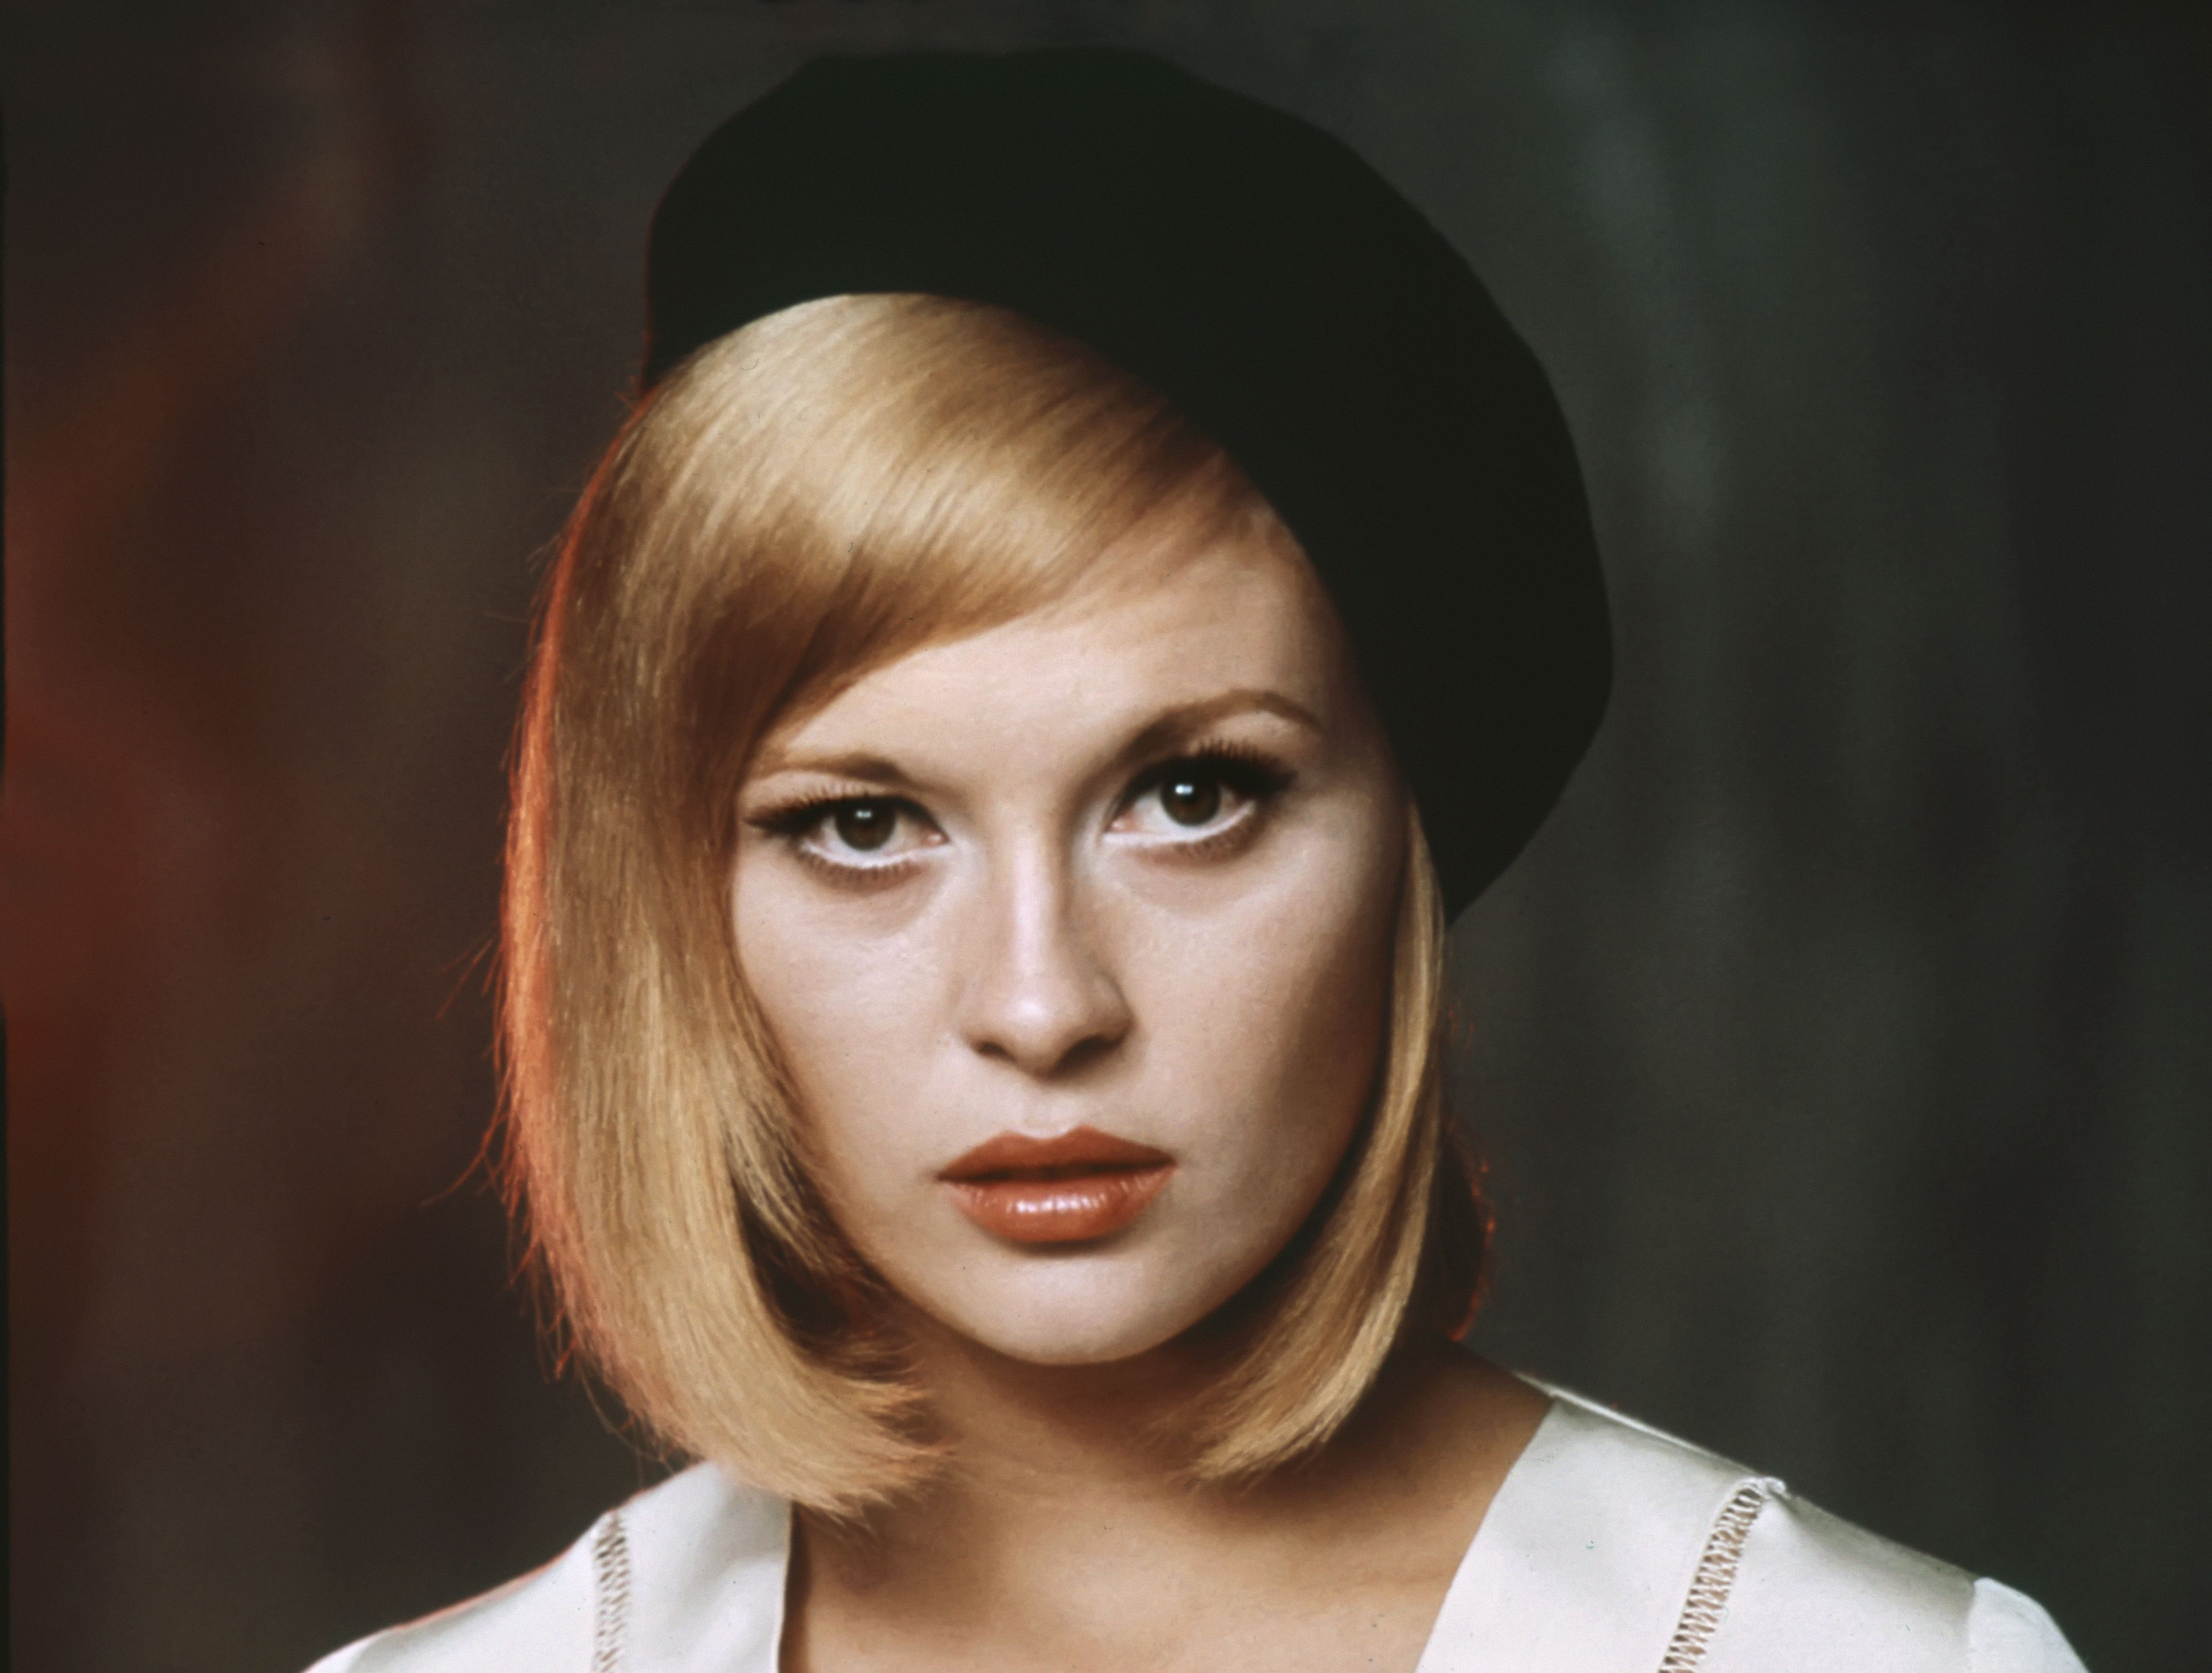 All Cars Symbols Wallpaper Faye Dunaway Wallpapers Backgrounds